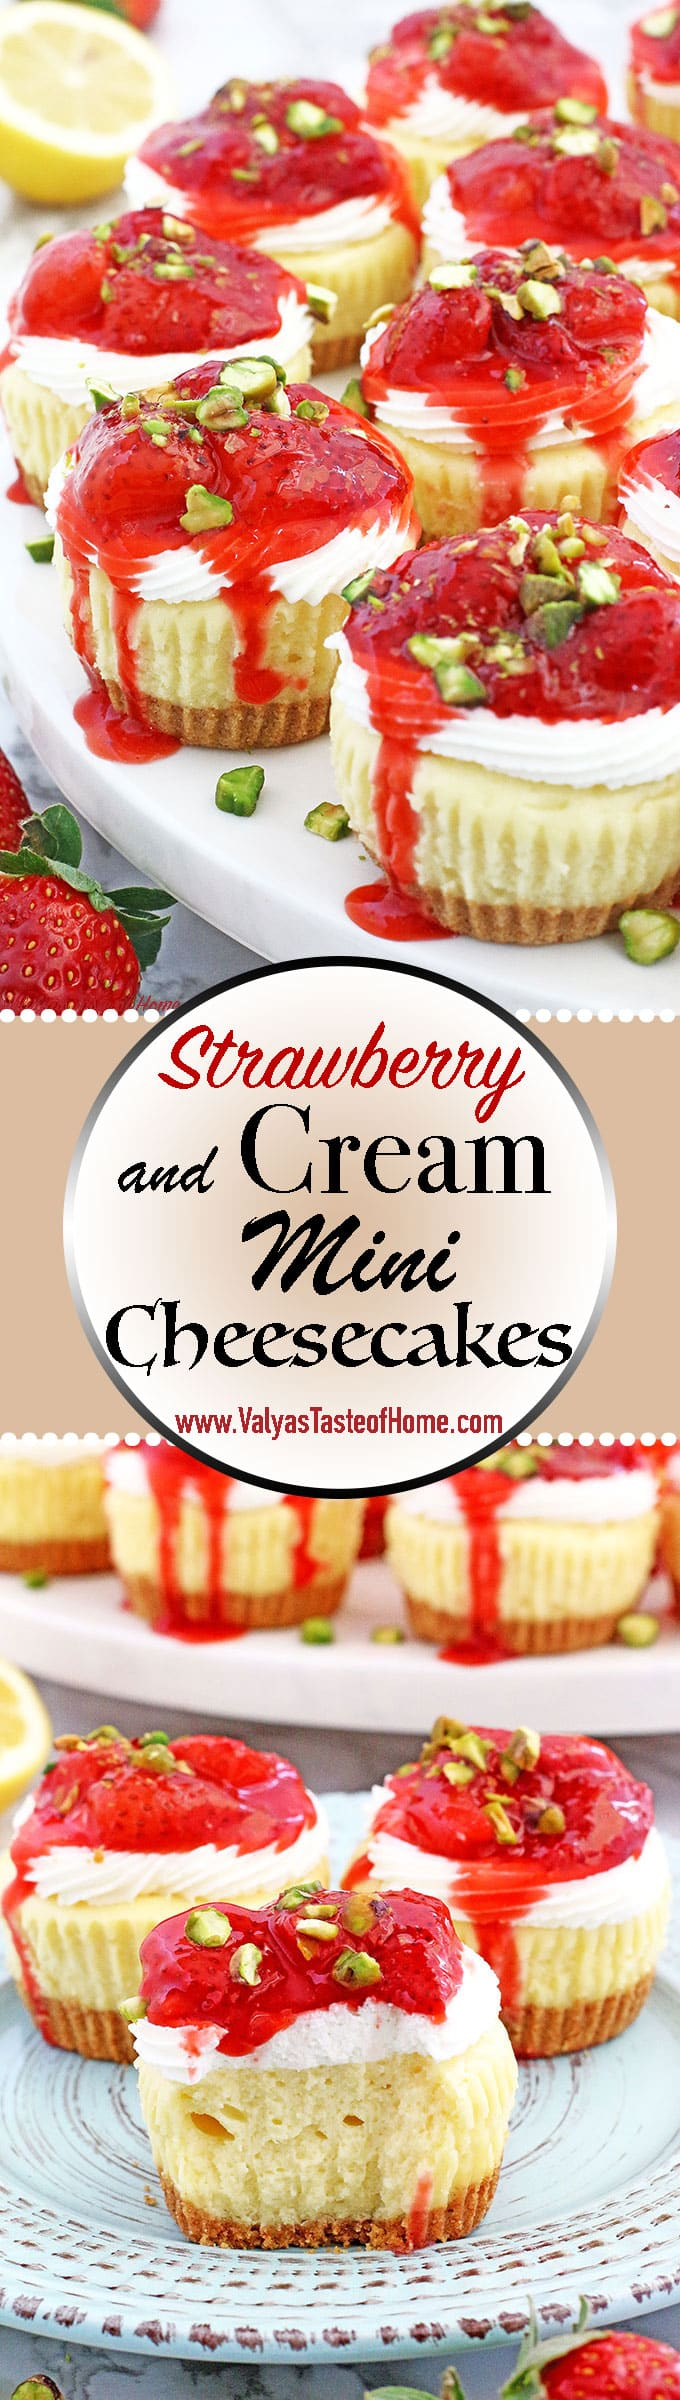 These Strawberry and Cream Mini Cheesecakes not only delicious, but just too cute to eat! They consist of creamy cheesecake filling, topped with tasty soft cream and chunky homemade strawberry sauce. Sprinkled pistachios not only finishes the beauty of these mini cheesecakes but gives delicious nutty flavor too. | www.valyastasteofhome.com